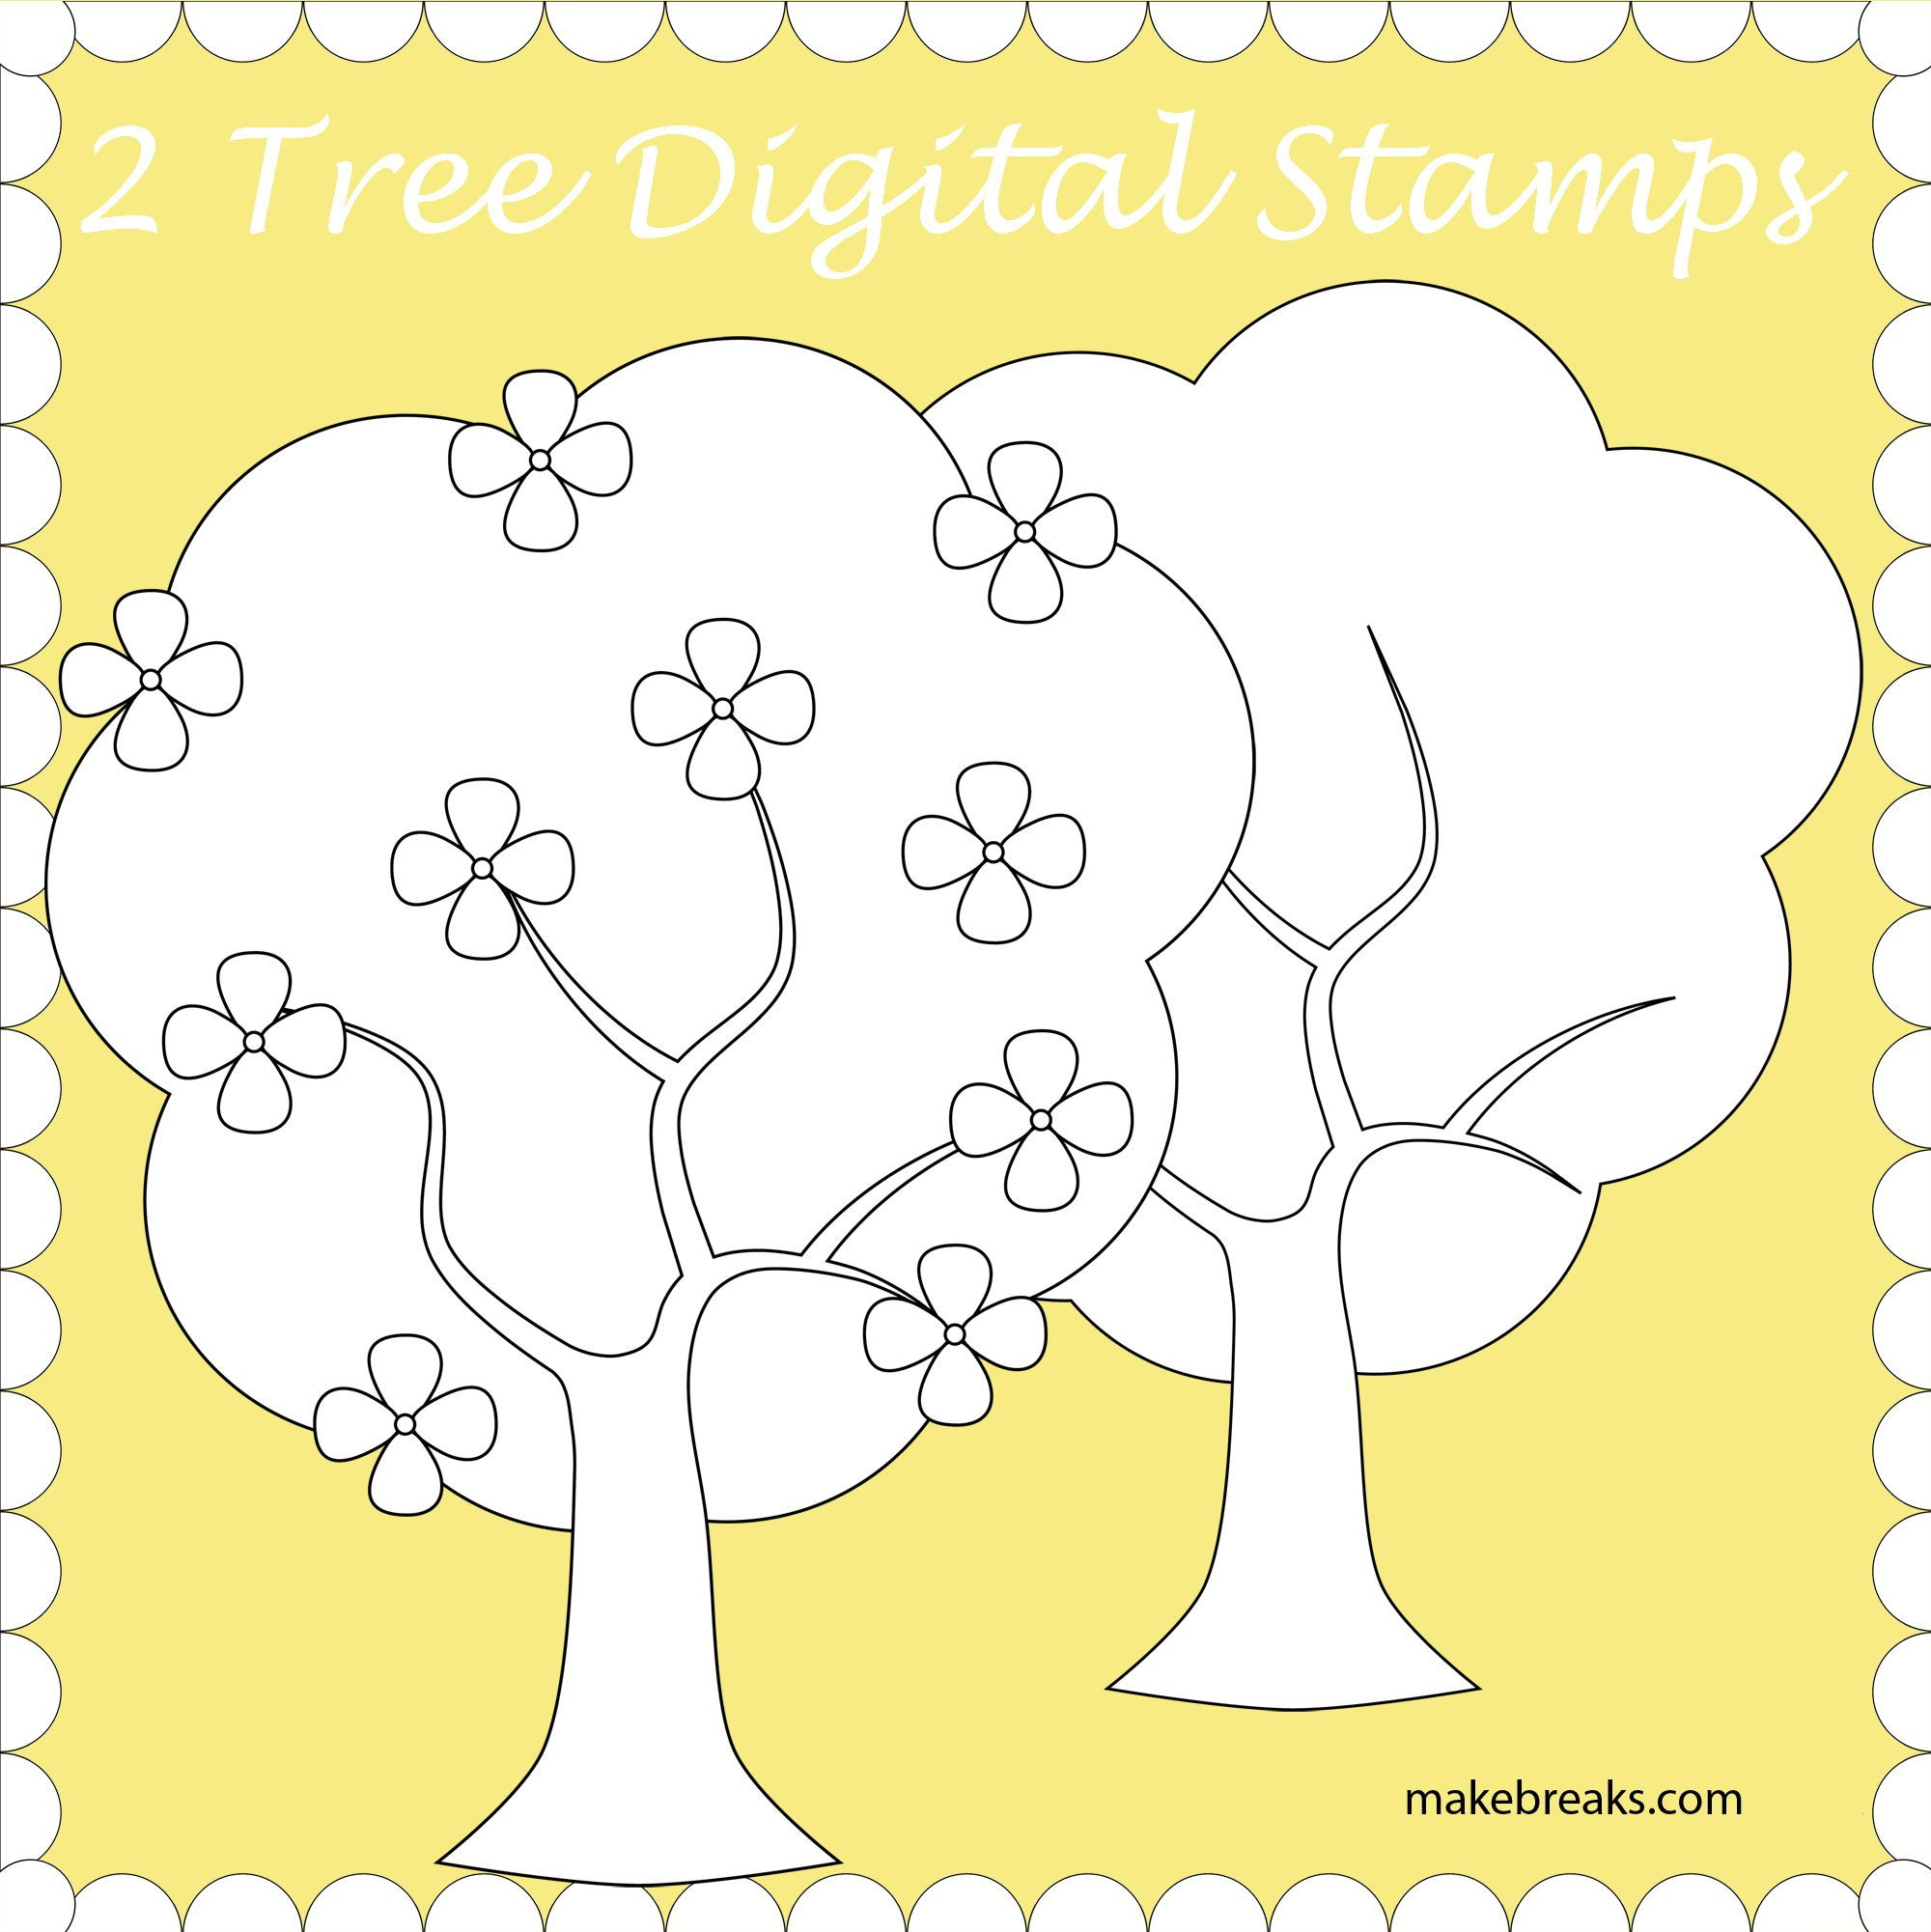 Free Trees Digital Stamp Digital stamps free, Digital